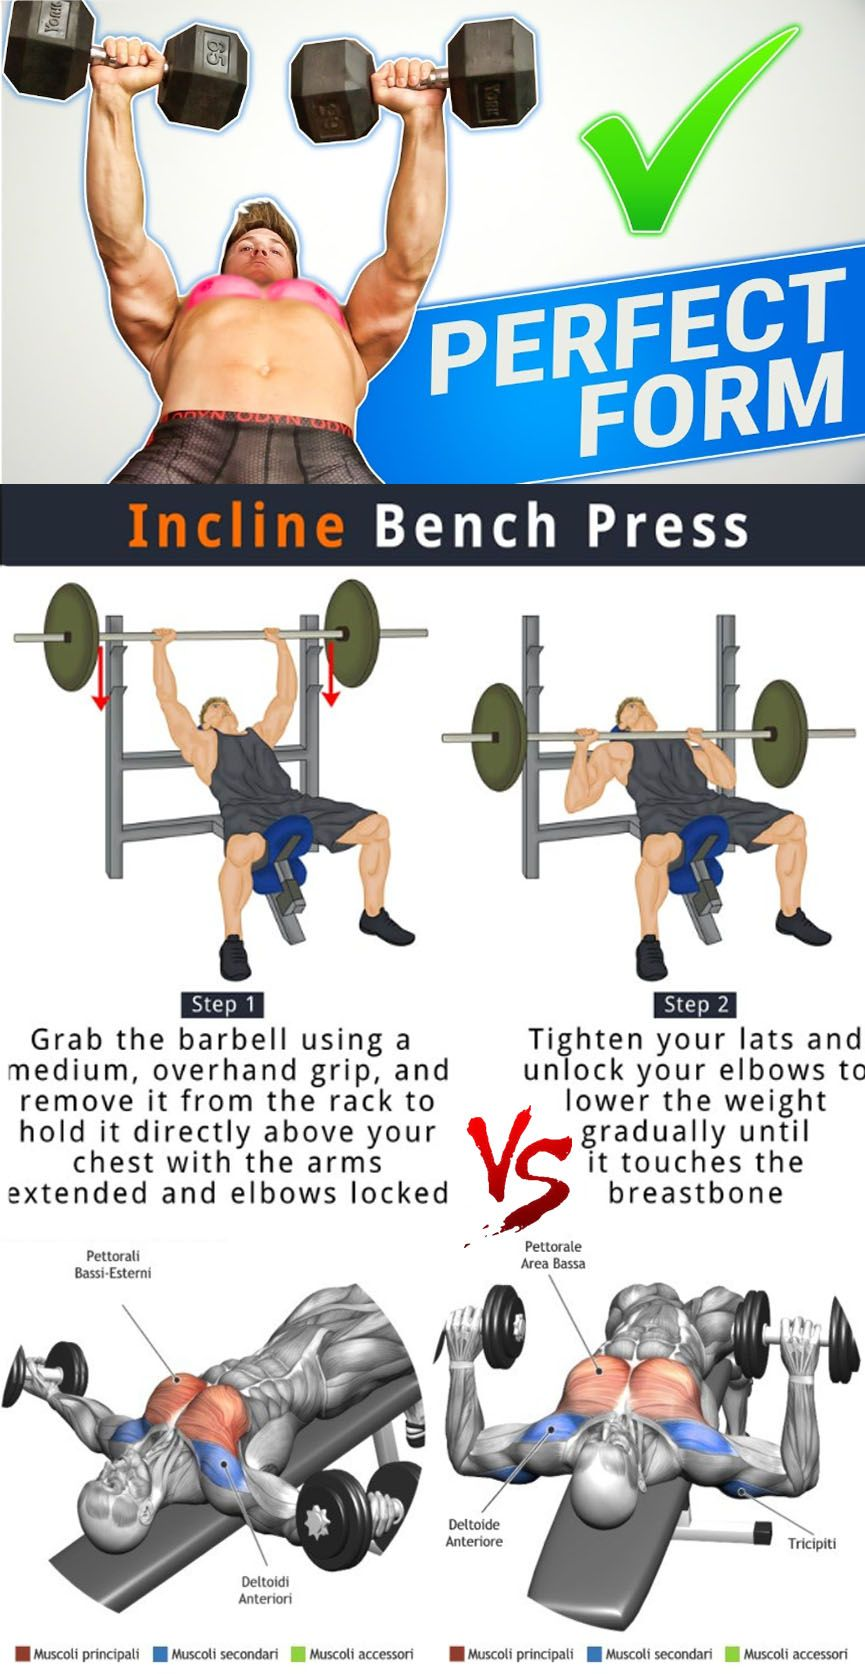 dd0ea6595d0f128154e1a1b295607a64 - How To Get Heavy Dumbbells Up For Bench Press